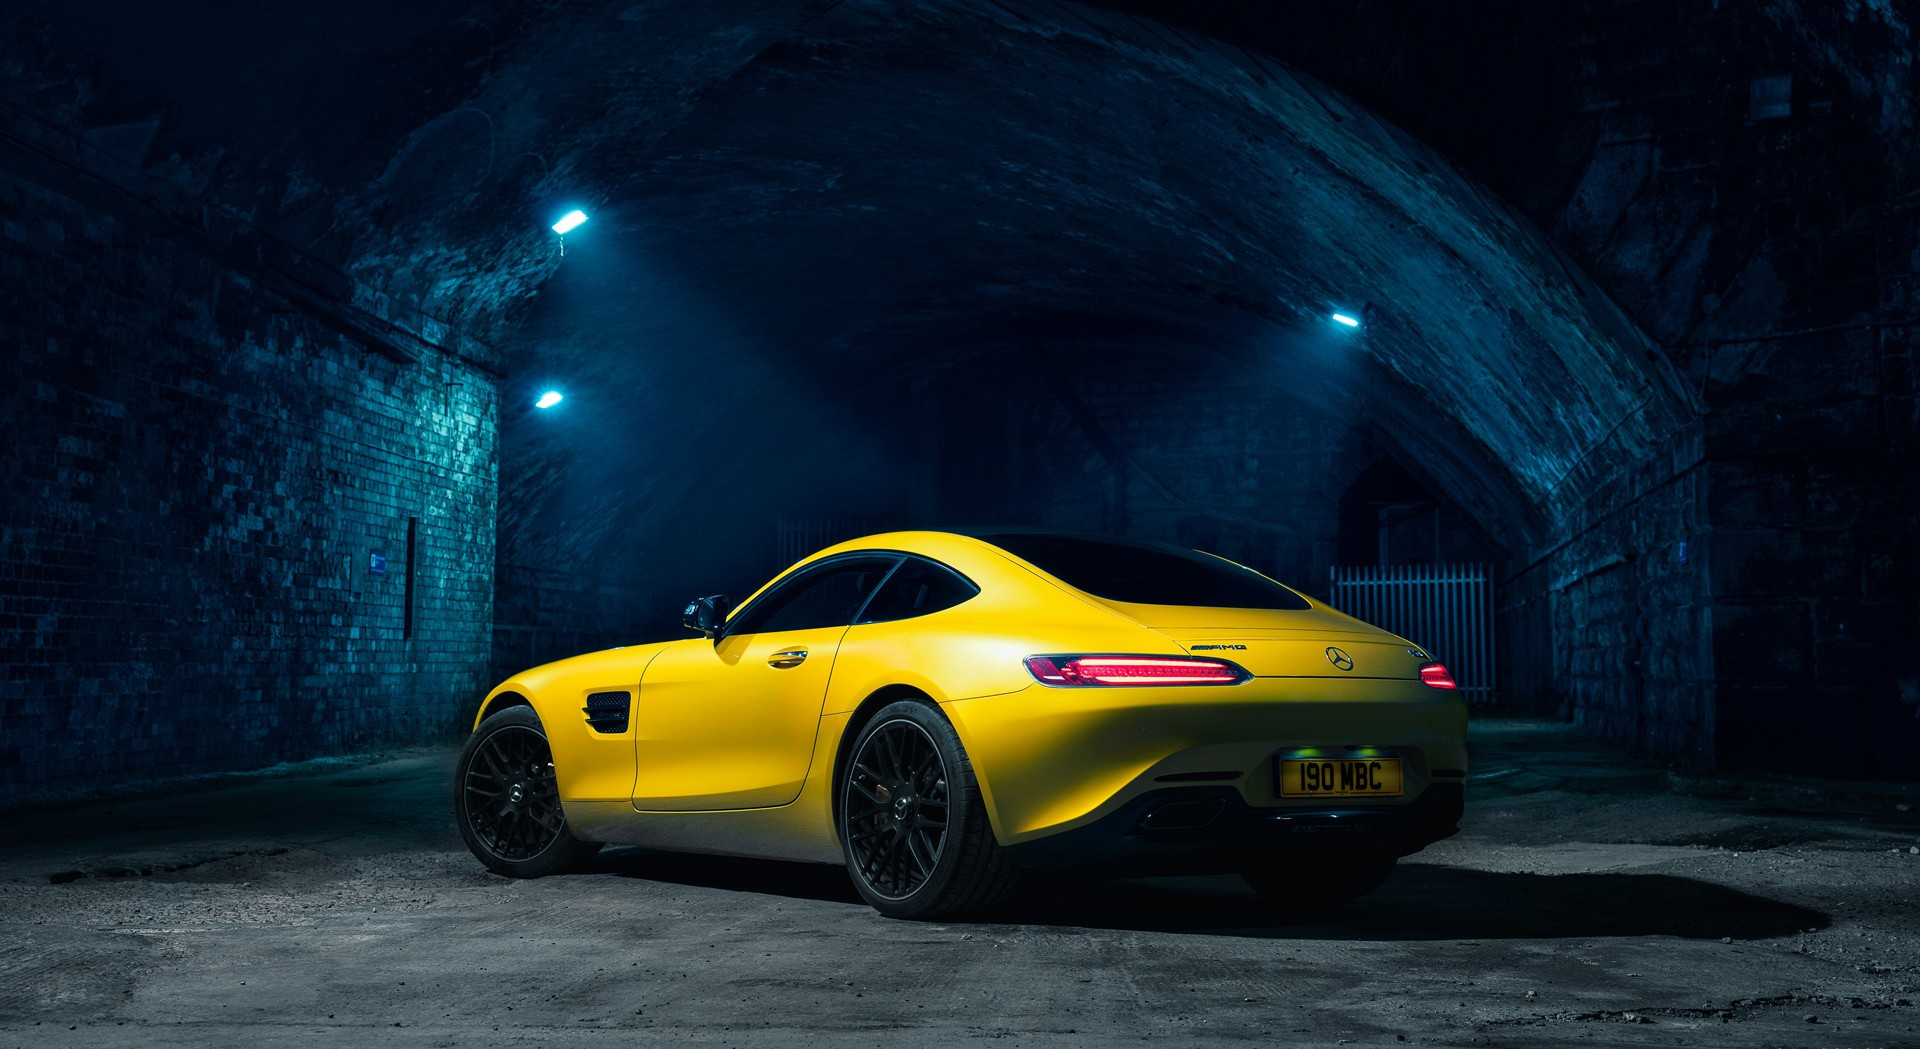 Free Wallpaper Cars And Bikes Mercedes Benz Amg Gt Uk Hd Desktop Wallpapers 4k Hd